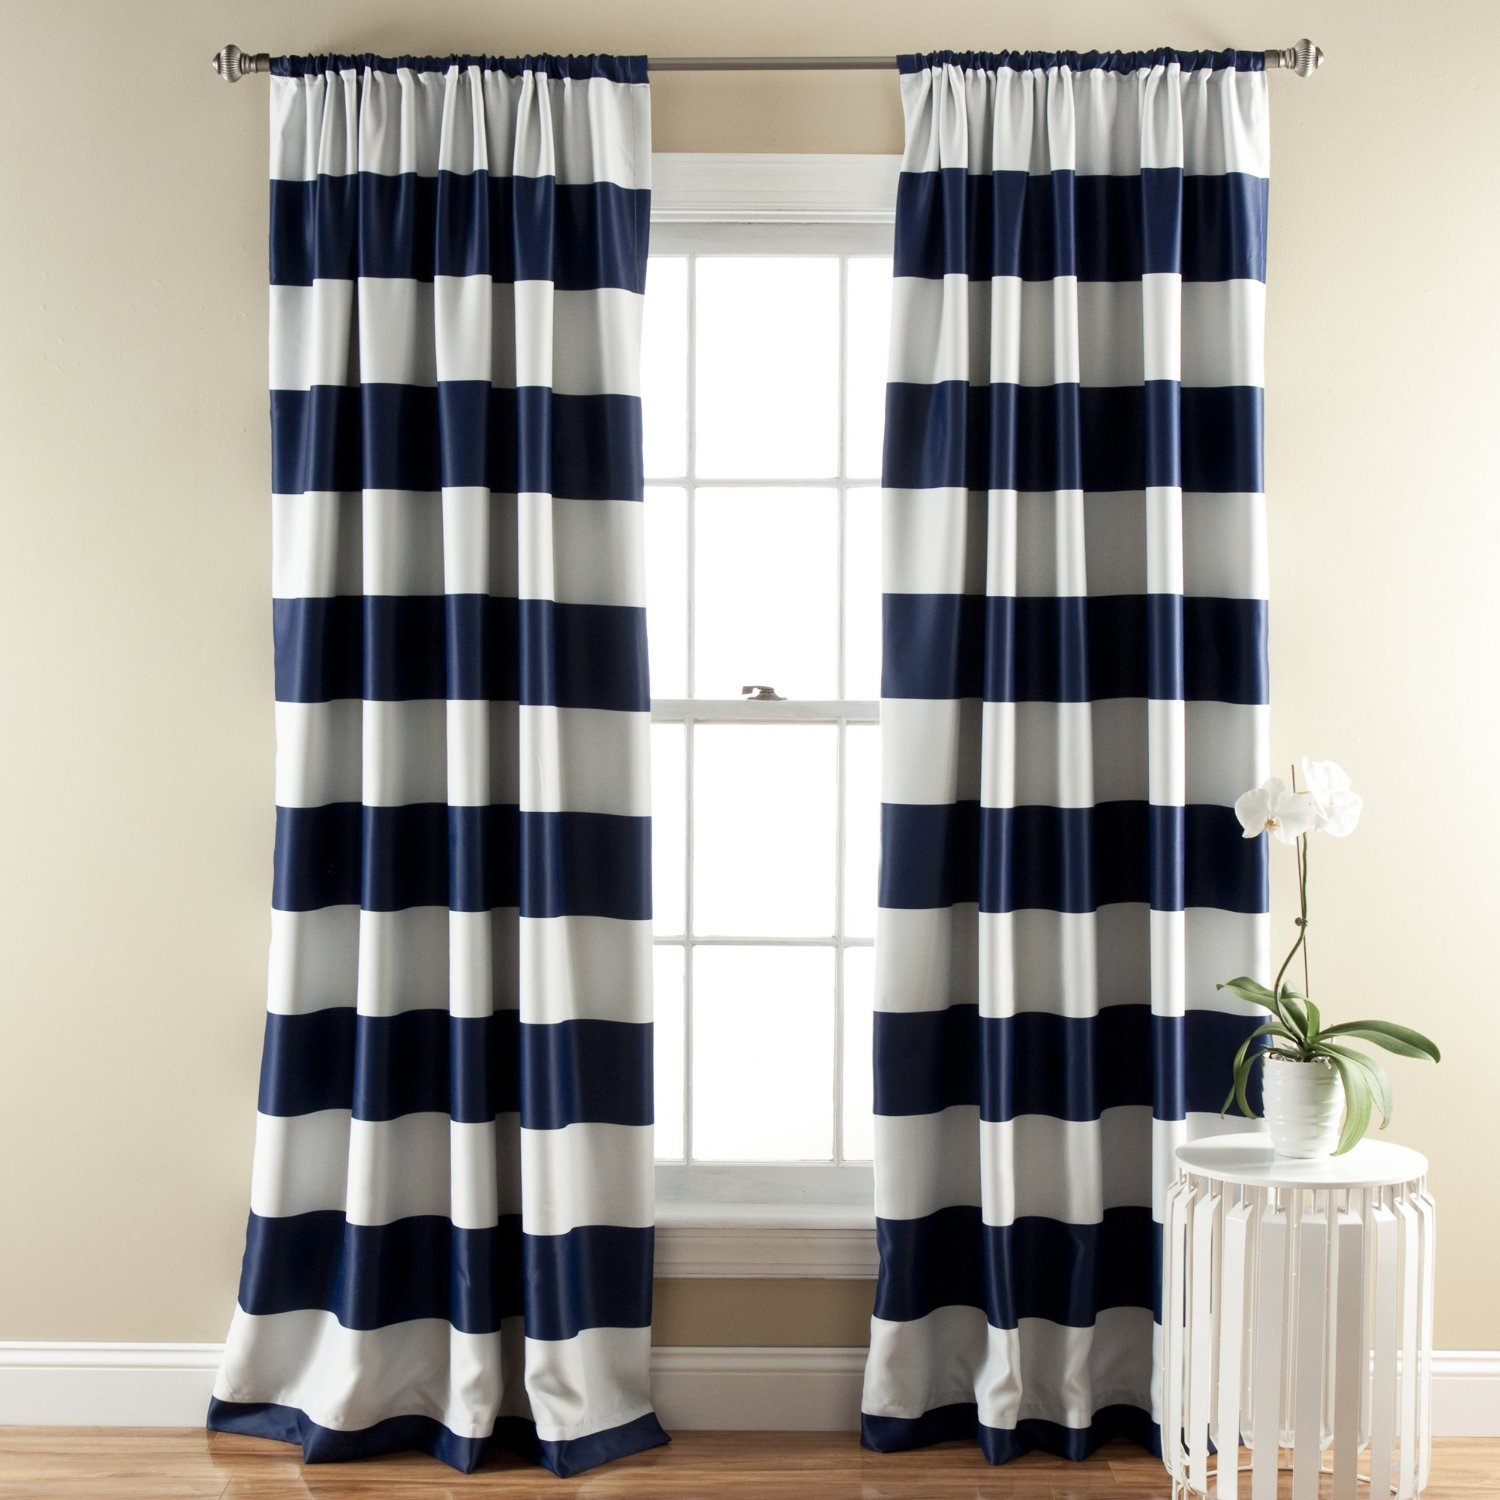 Stunning Amazon.com: Lush Décor Stripe Room Darkening Window Curtain Panel, 84 inch navy and white striped curtains